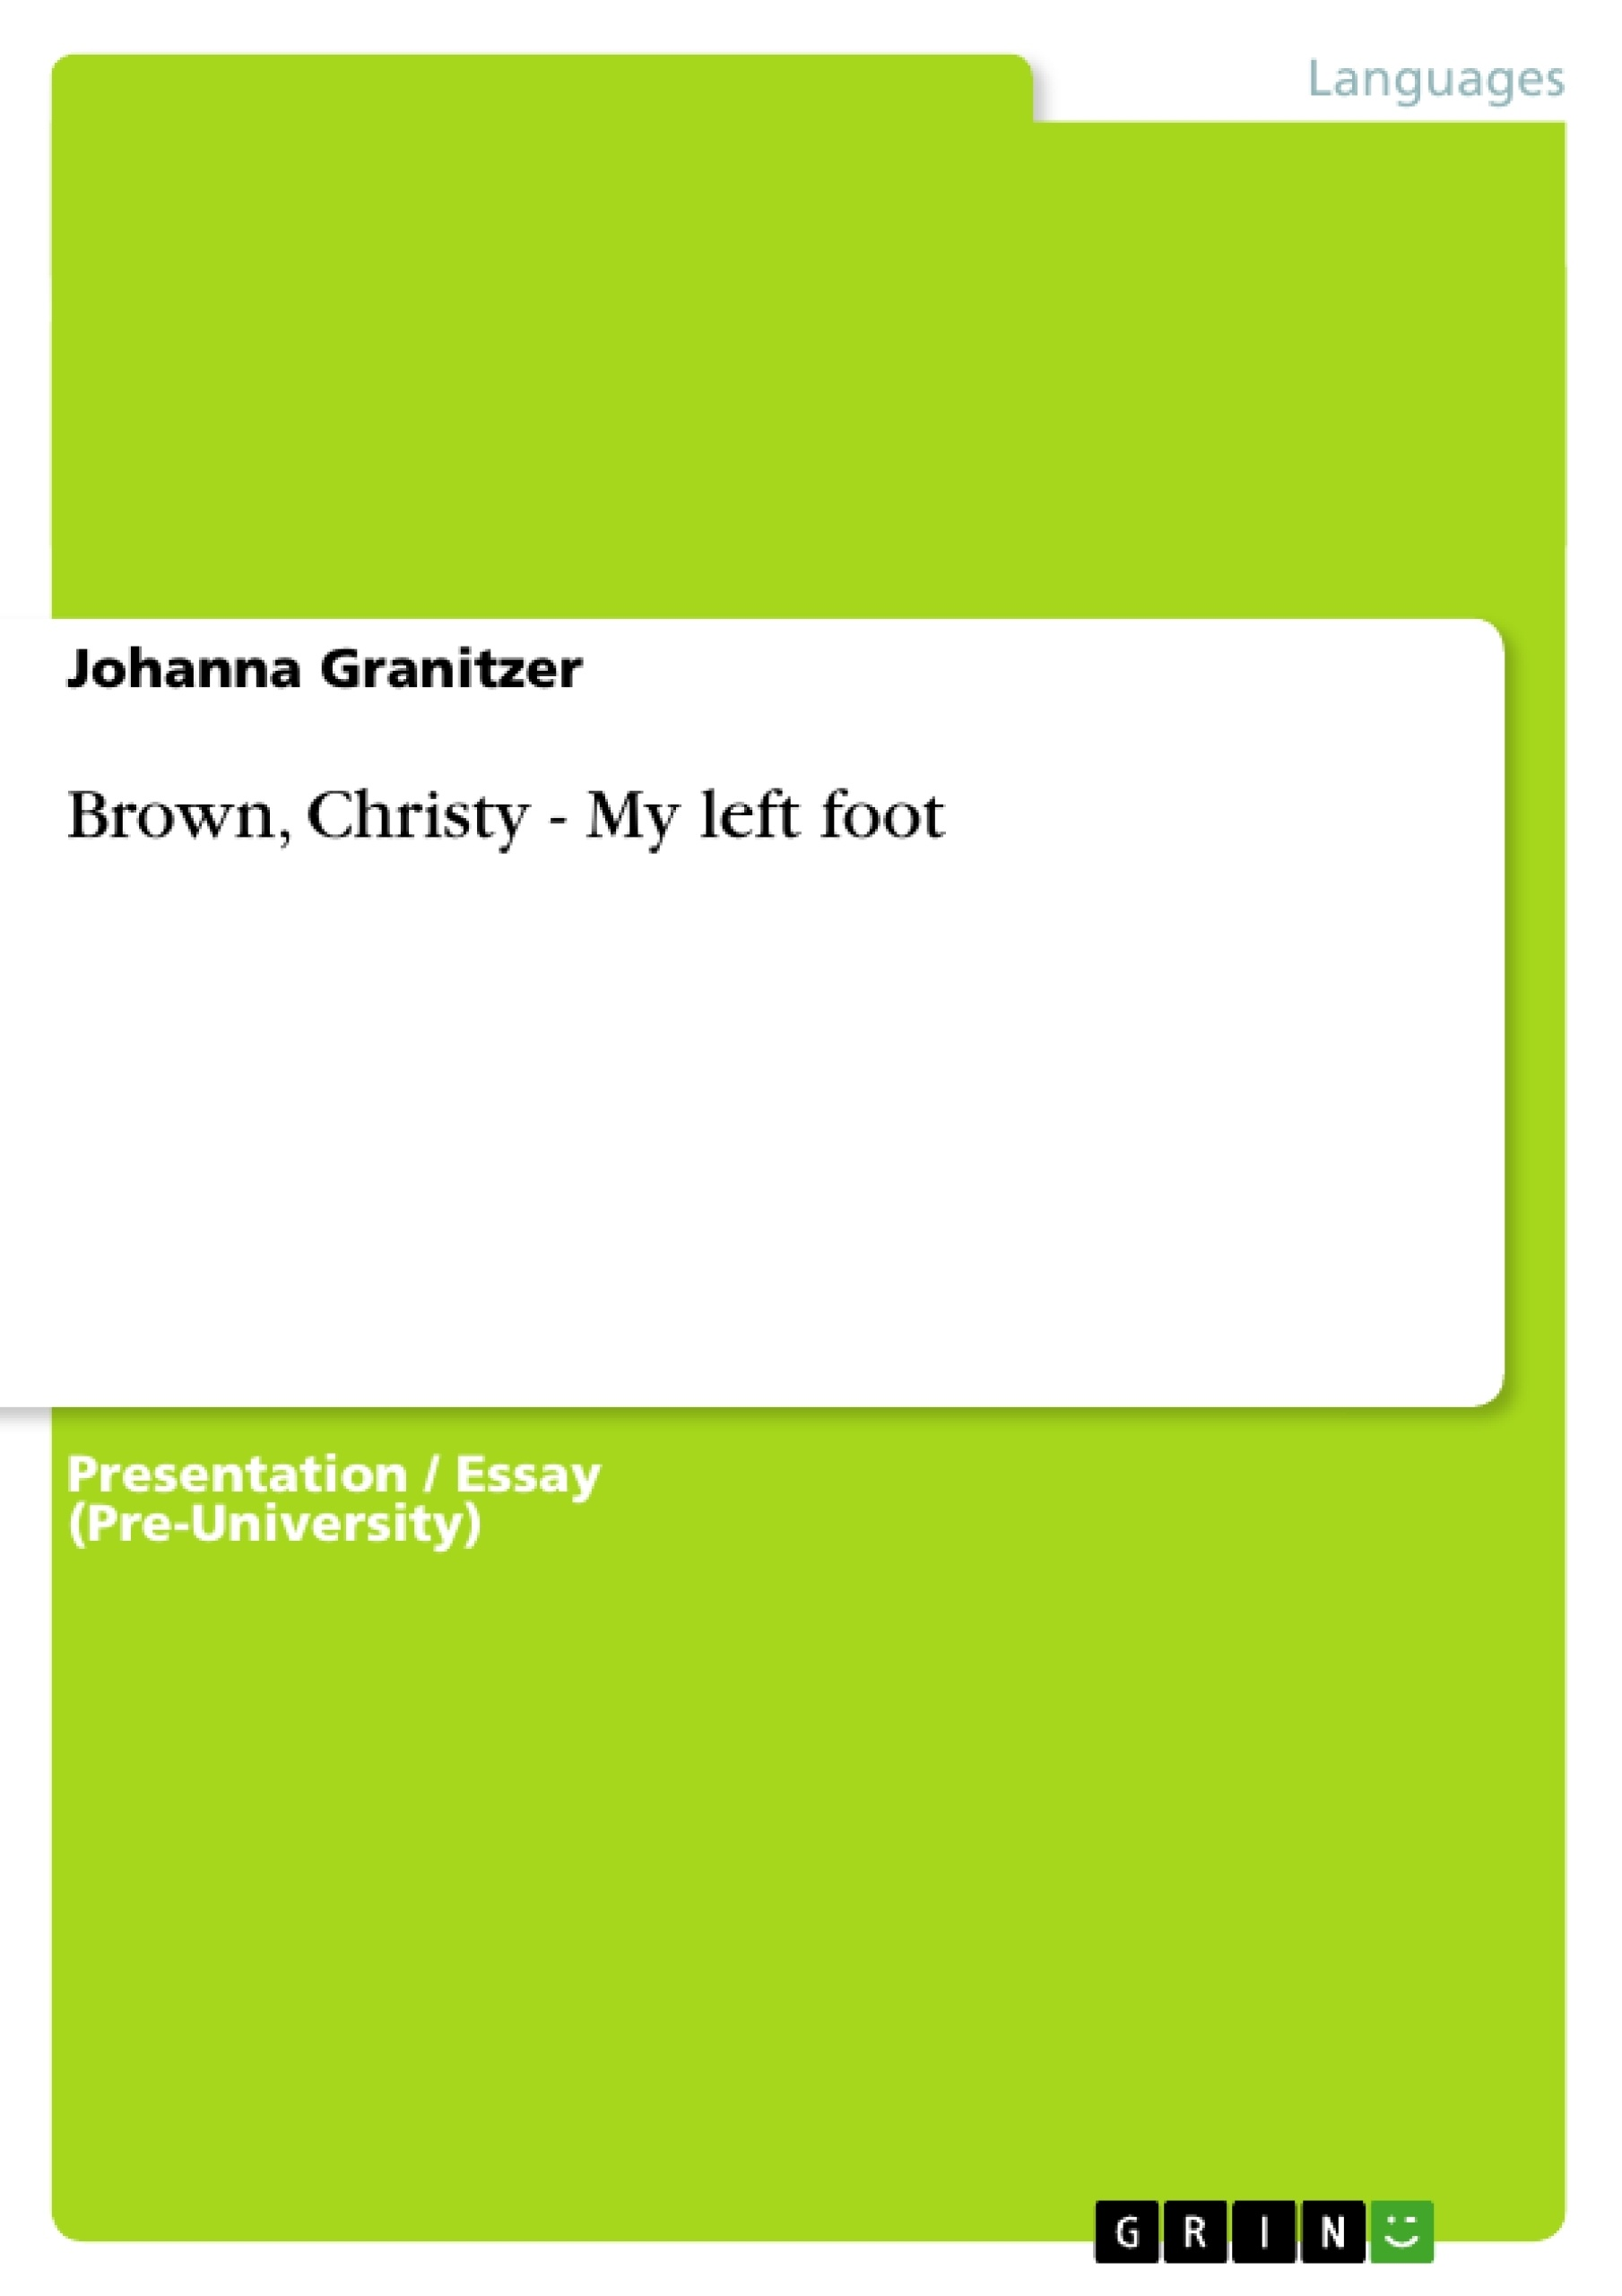 Title: Brown, Christy - My left foot